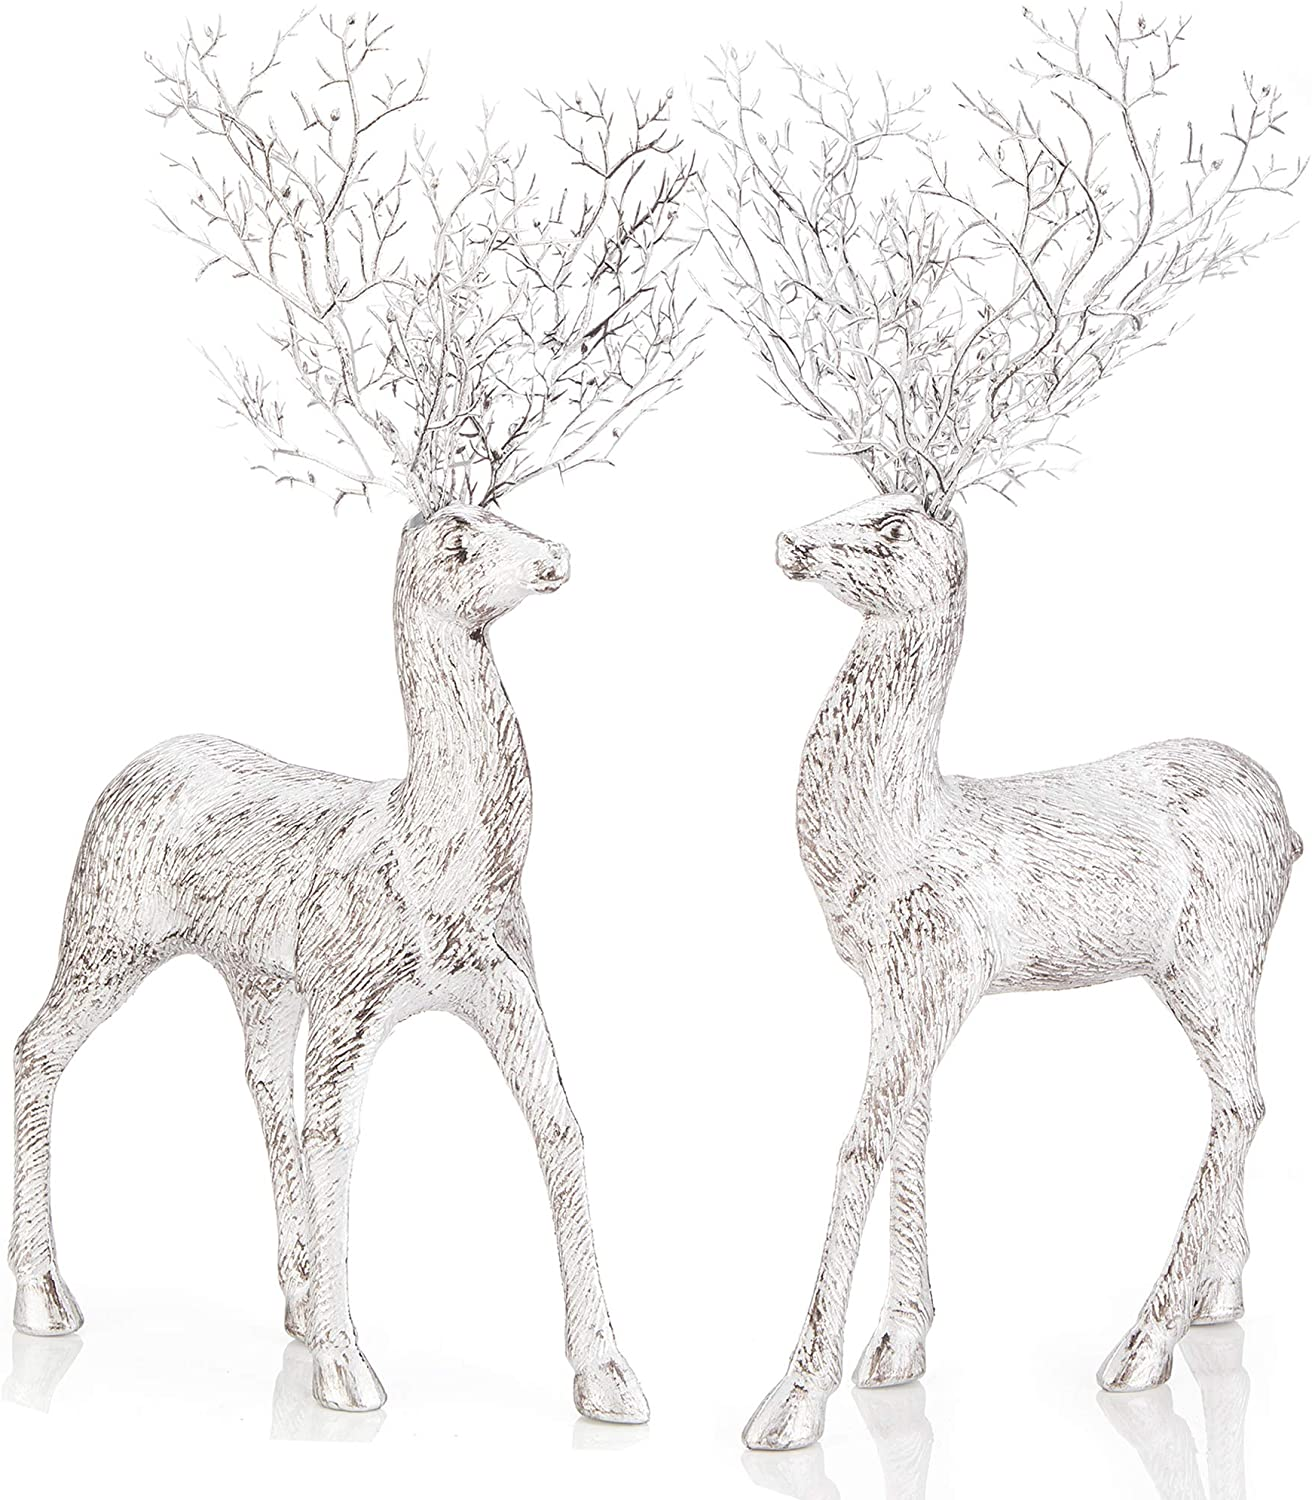 iPEGTOP 2 Pcs Rustic Christmas Reindeer Elk Holiday Figurines Decoration Christmas Standing Deer, Home Office Decor Statues Party Supplies